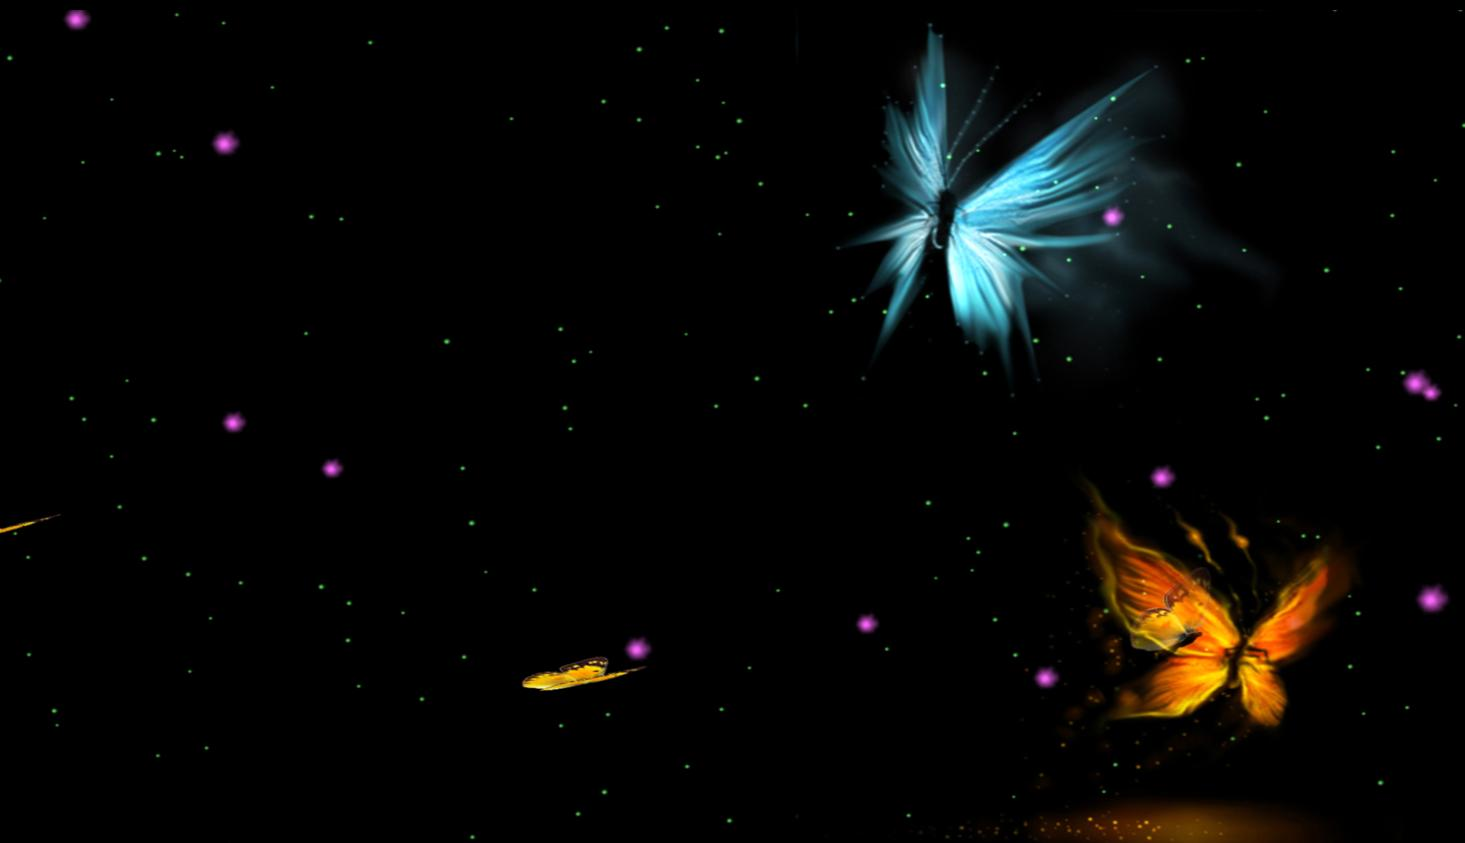 Animated Butterfly Wallpaper Fantastic Butterfly Screensaver